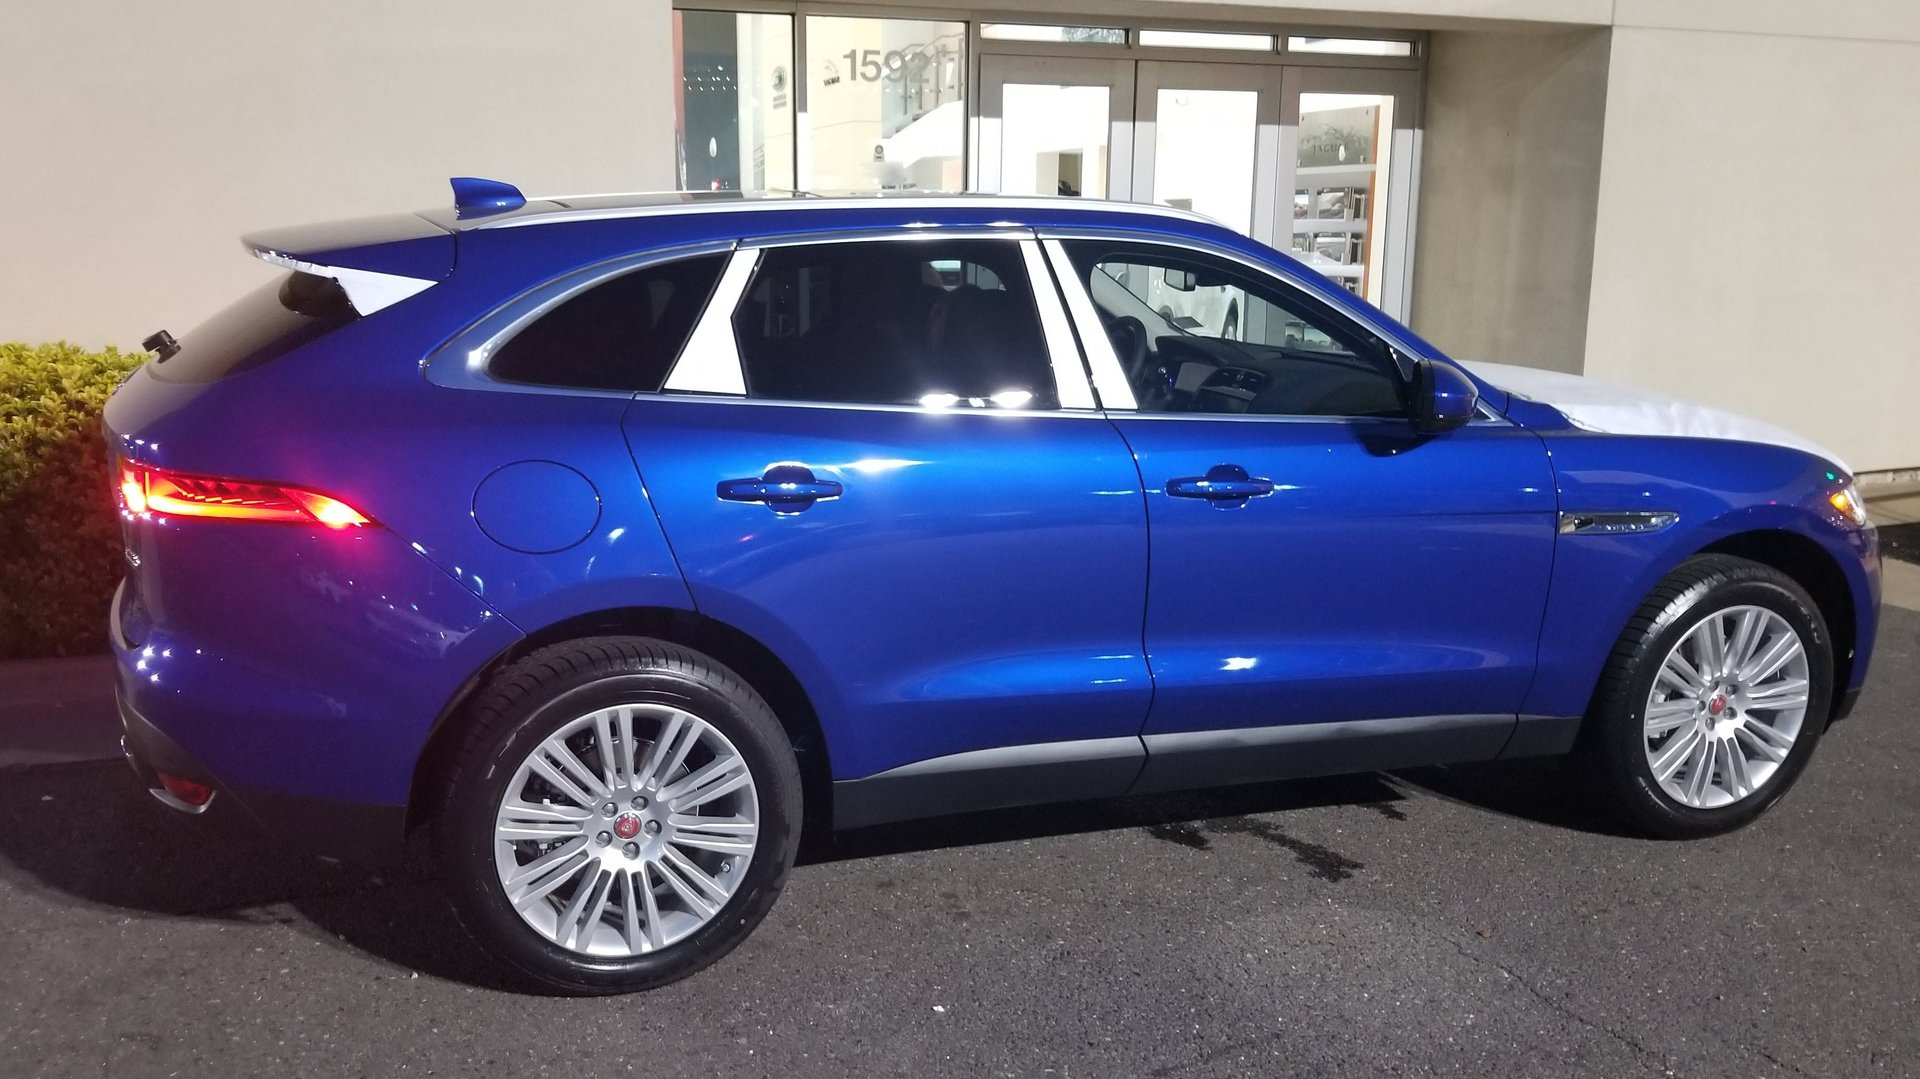 Help pick how to mod my F-Pace | Jaguar F-Pace Forum